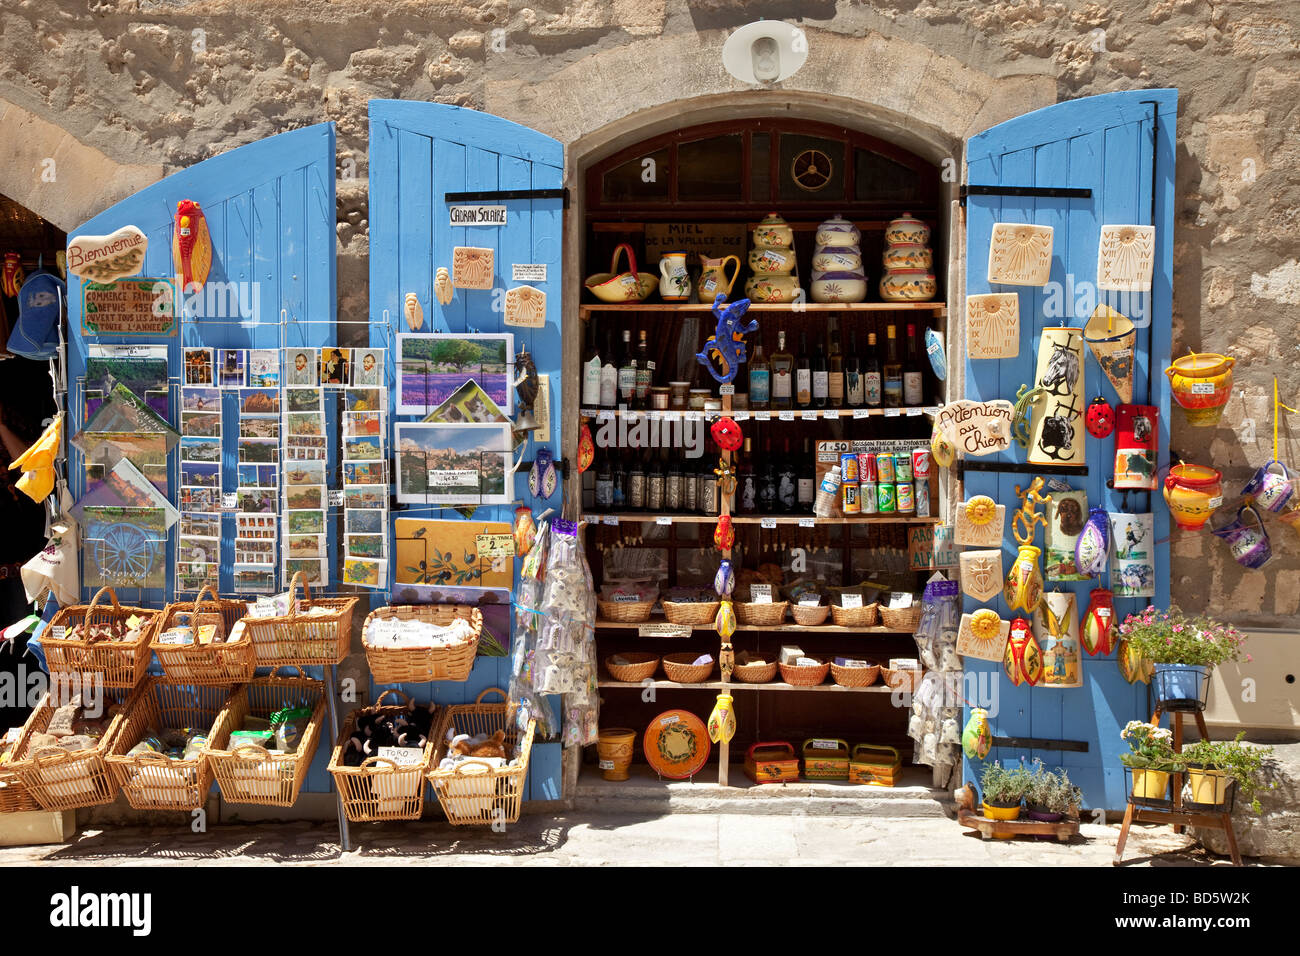 Tourist shop in Les Baux, Provence France - Stock Image